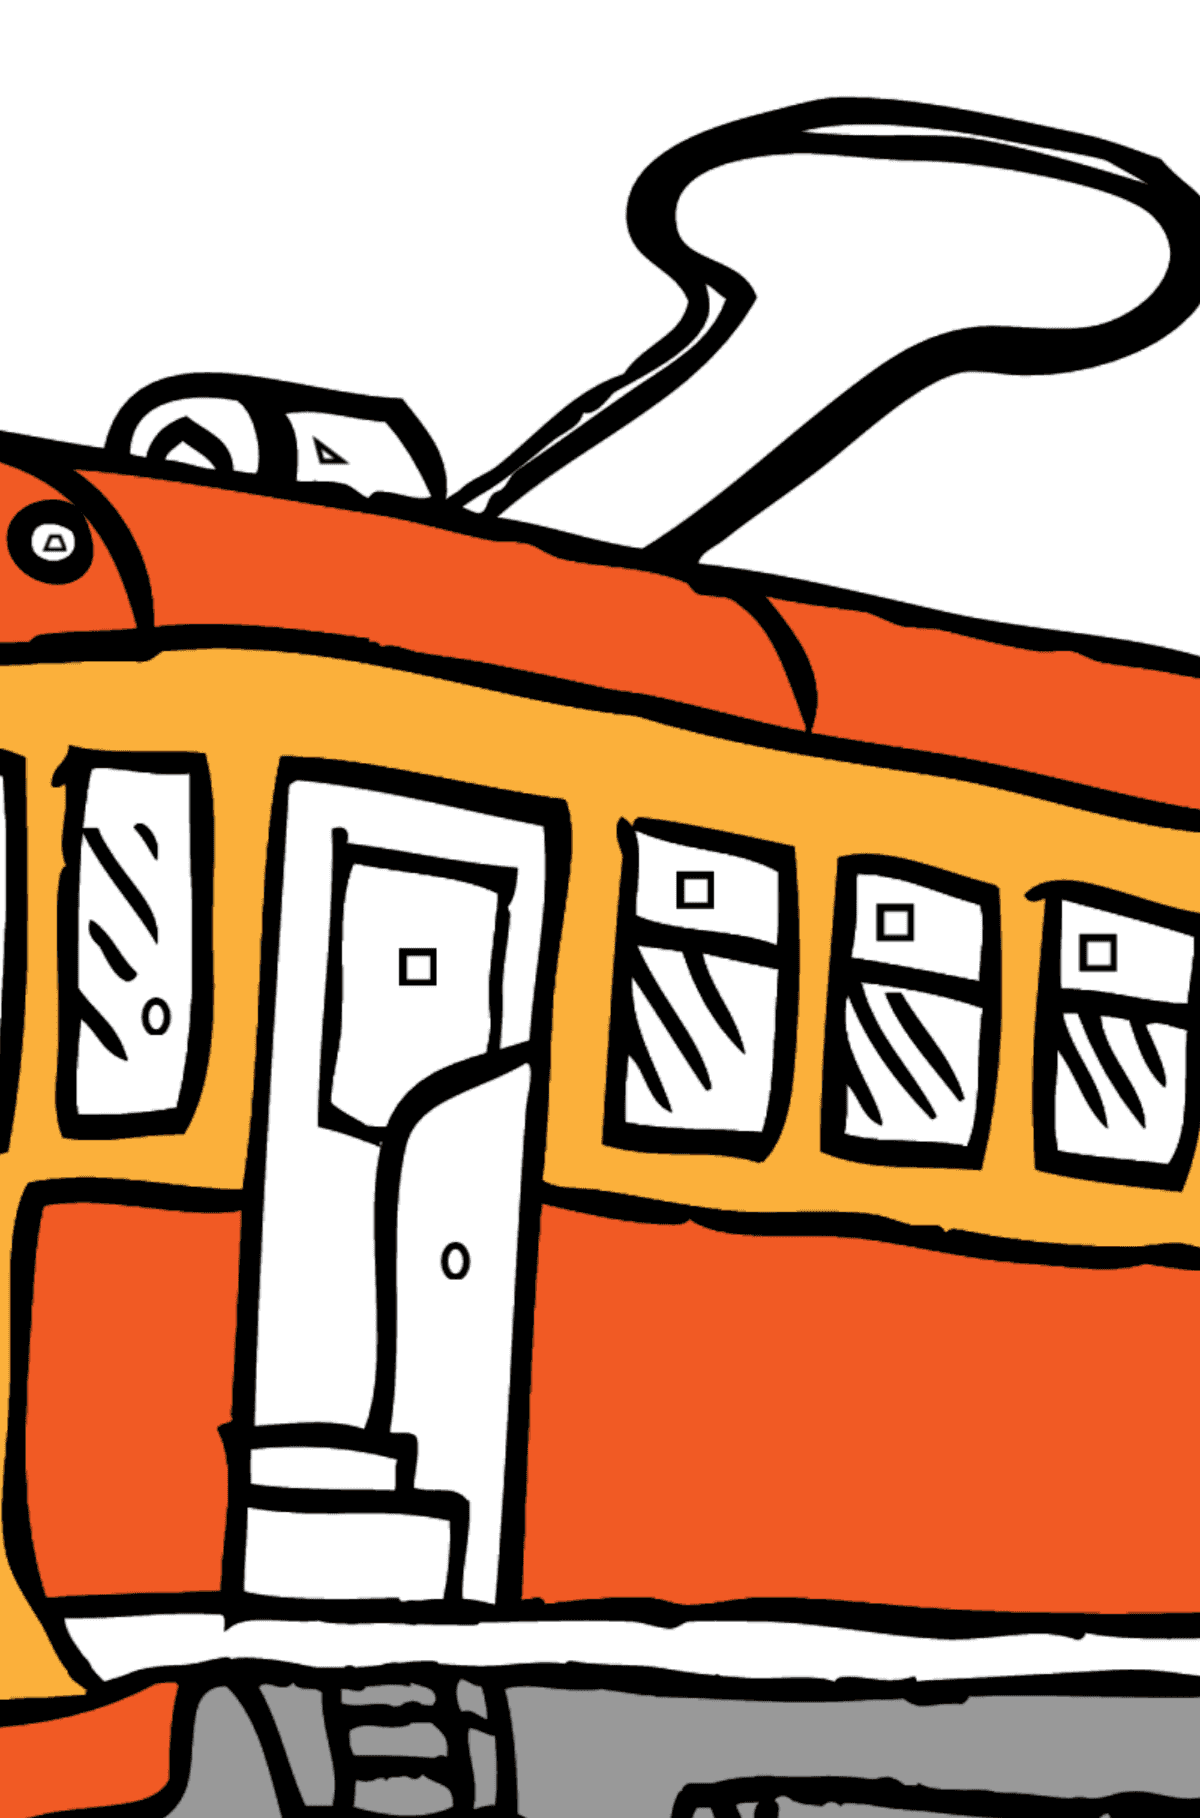 Simple Coloring Page - A Tram is Bored - Coloring by Geometric Shapes for Kids